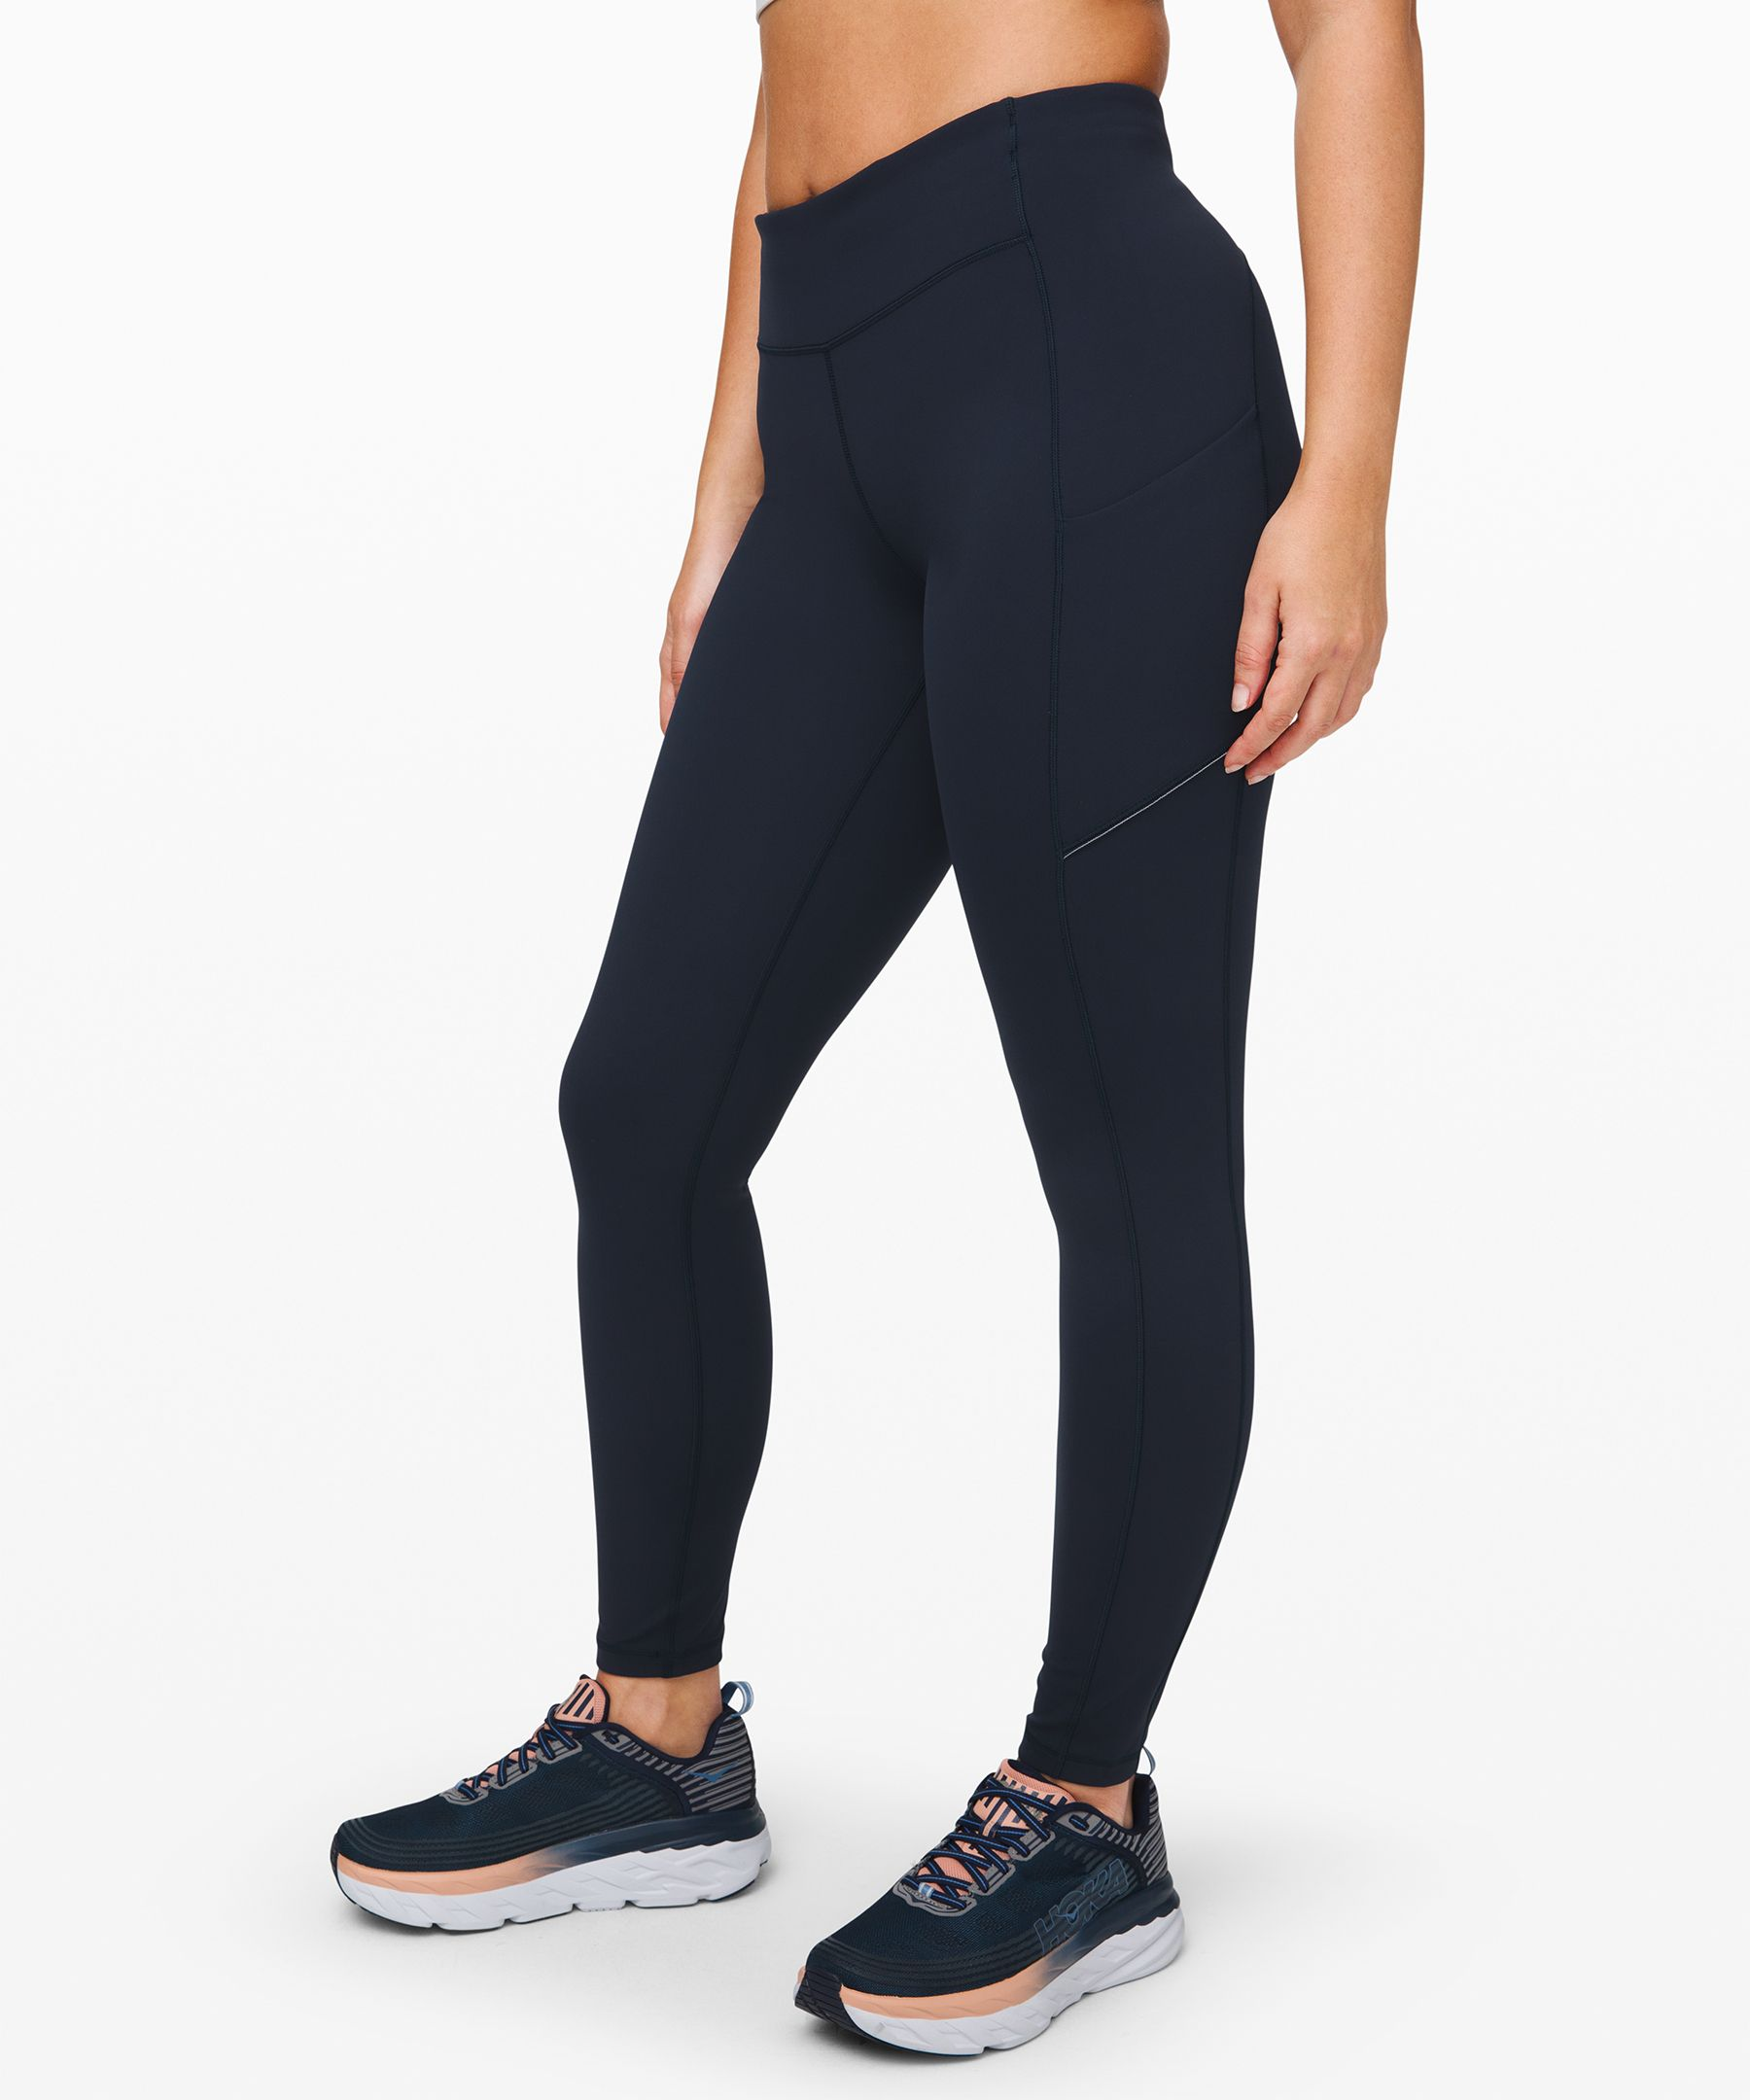 We designed these tights with  a lightweight waistband and  easy-access pockets so you can  focus on your run—not your gear.